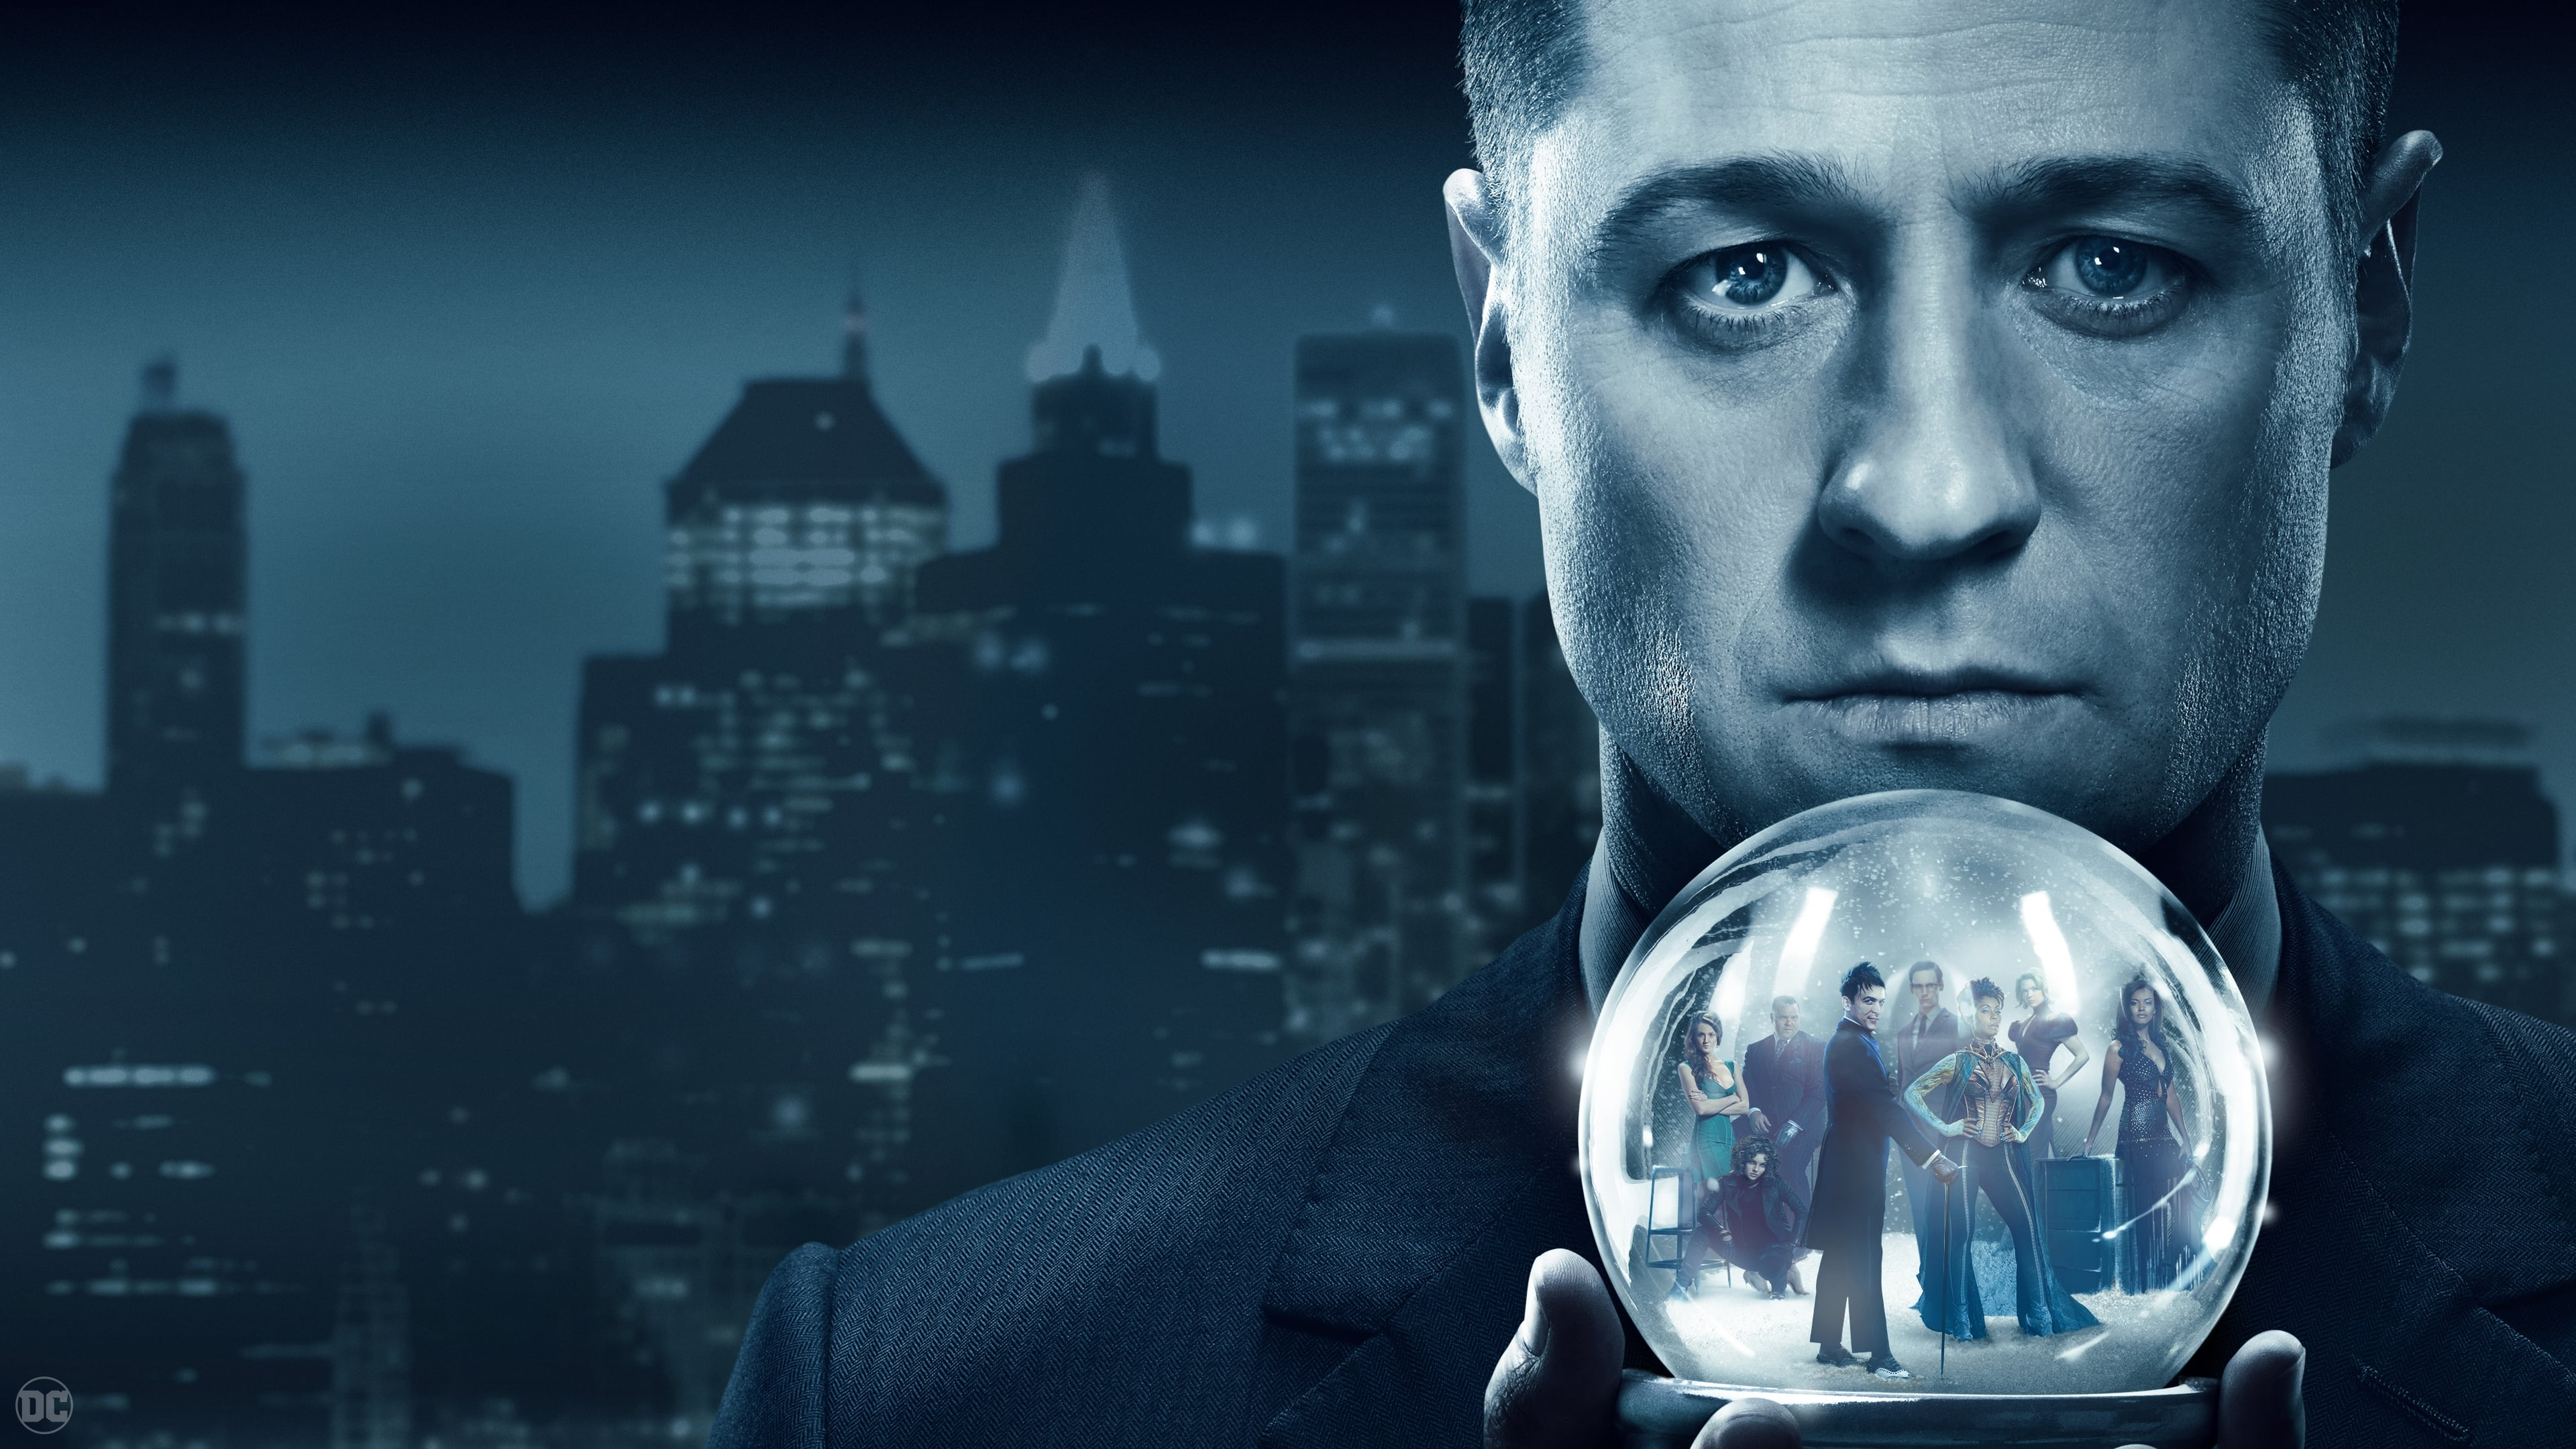 Gotham - Season 0 Episode 3 : Aftermath: Oswald